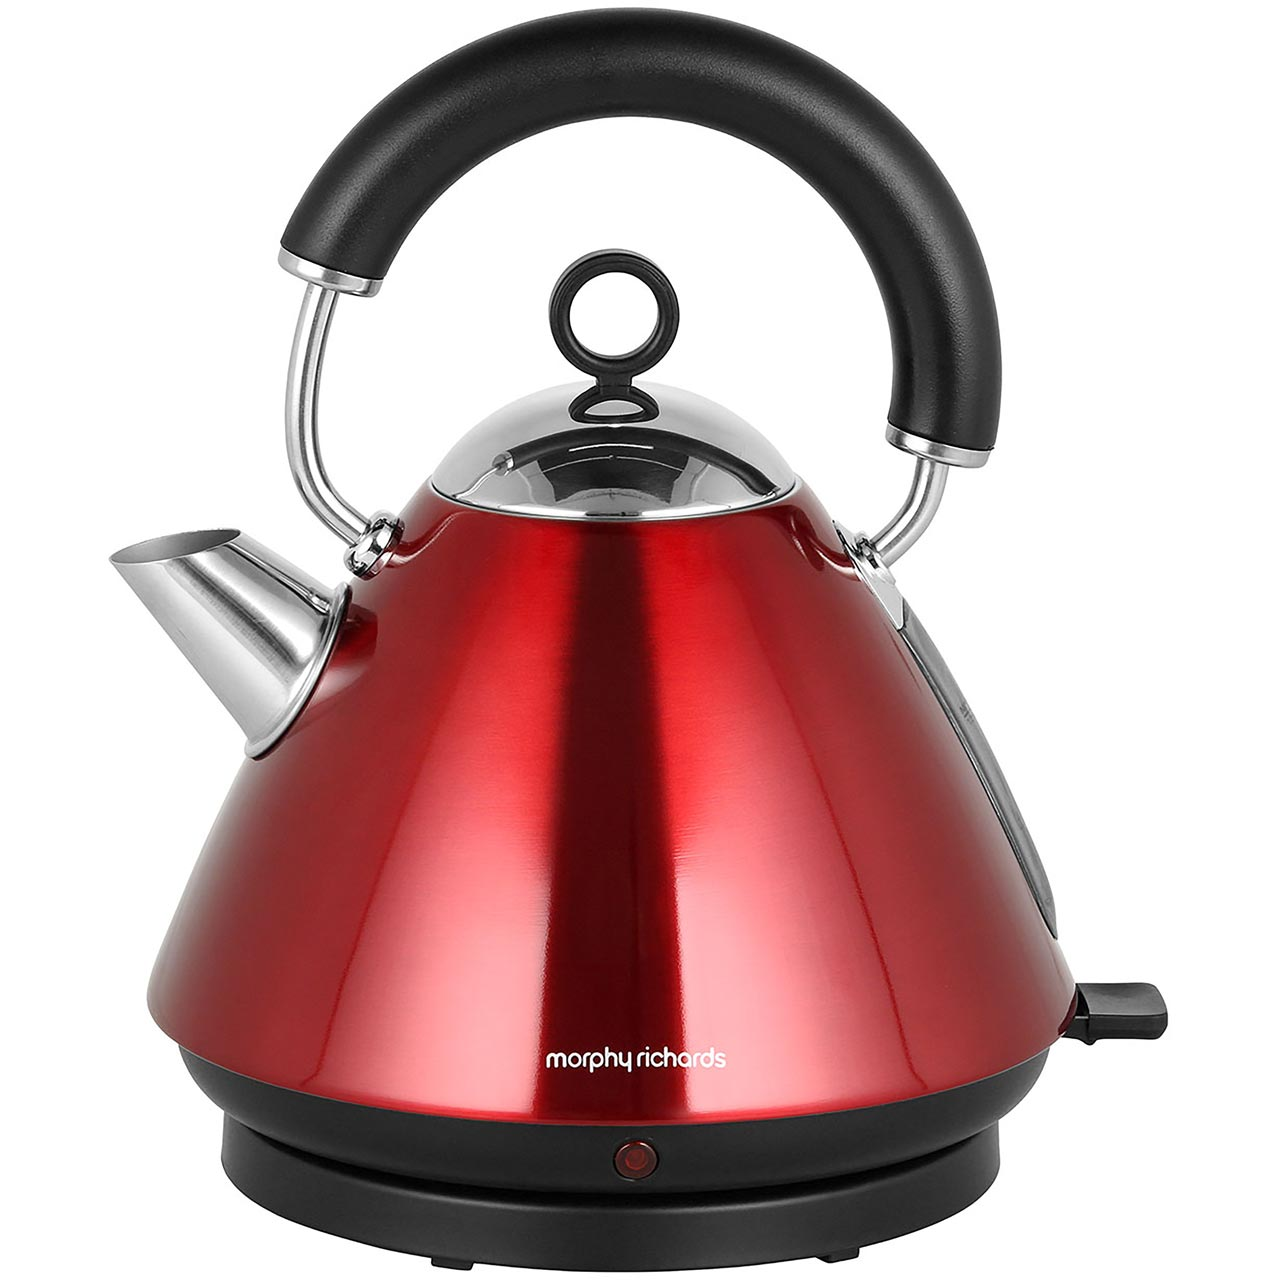 Morphy Richards Accents 102029 Kettle - Red